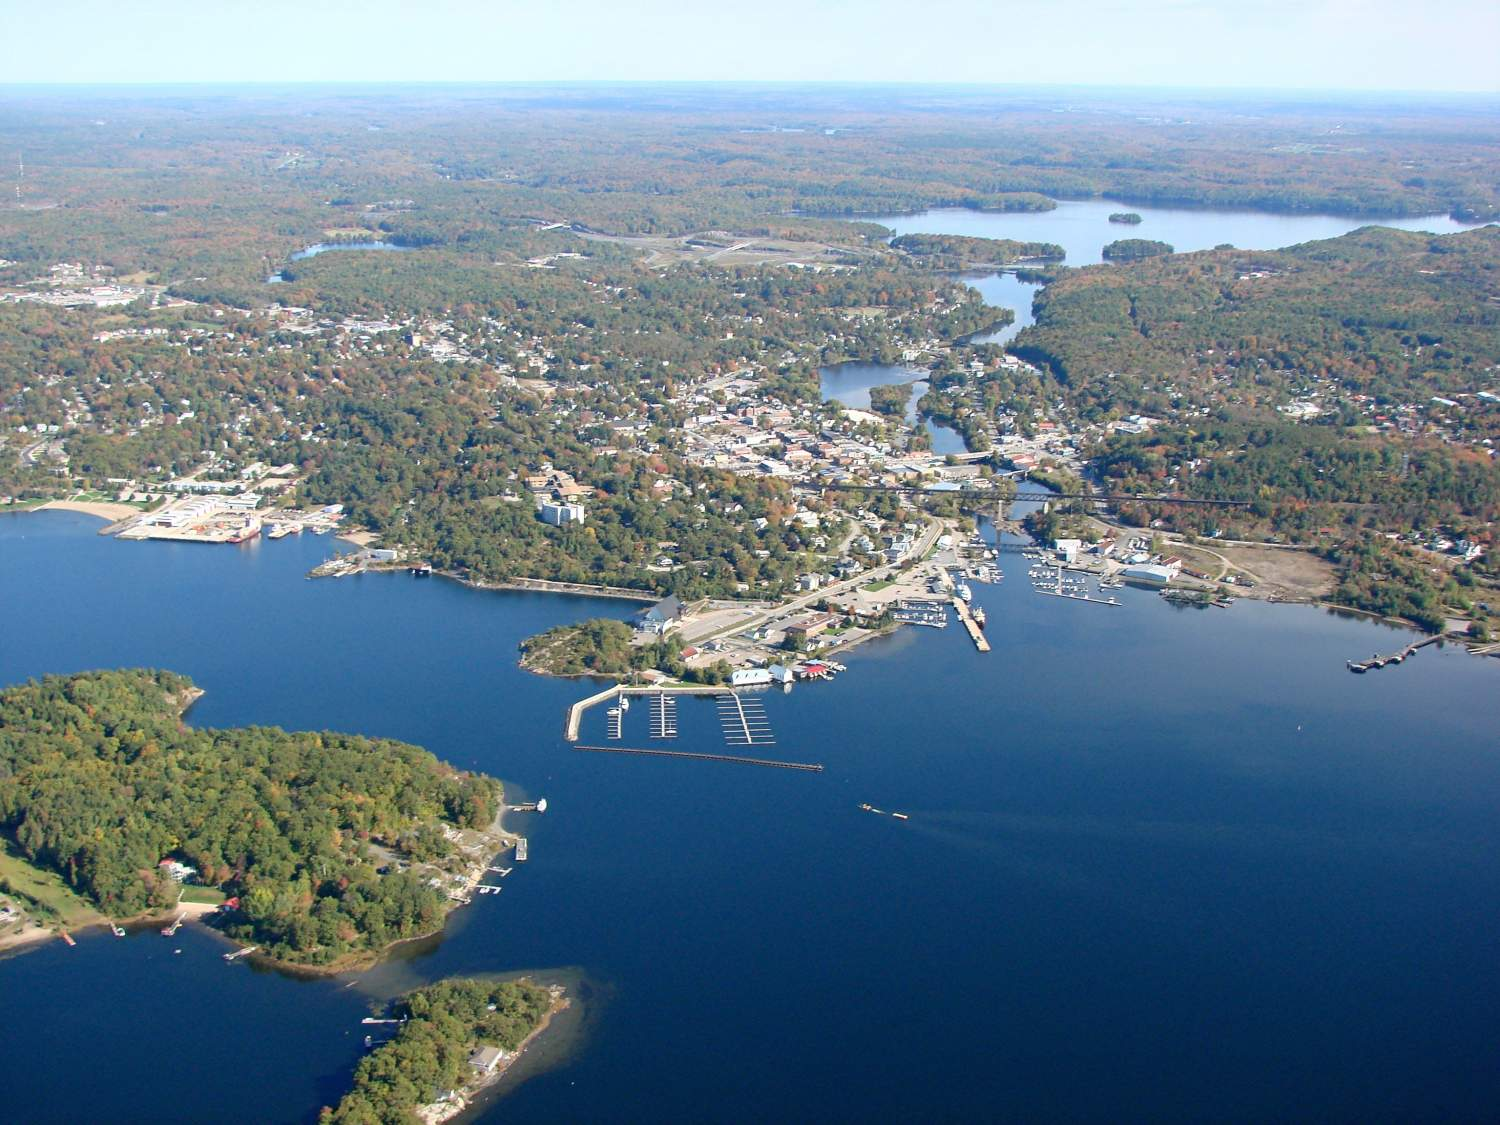 Overlooking Parry Sound, Ontario, Canada